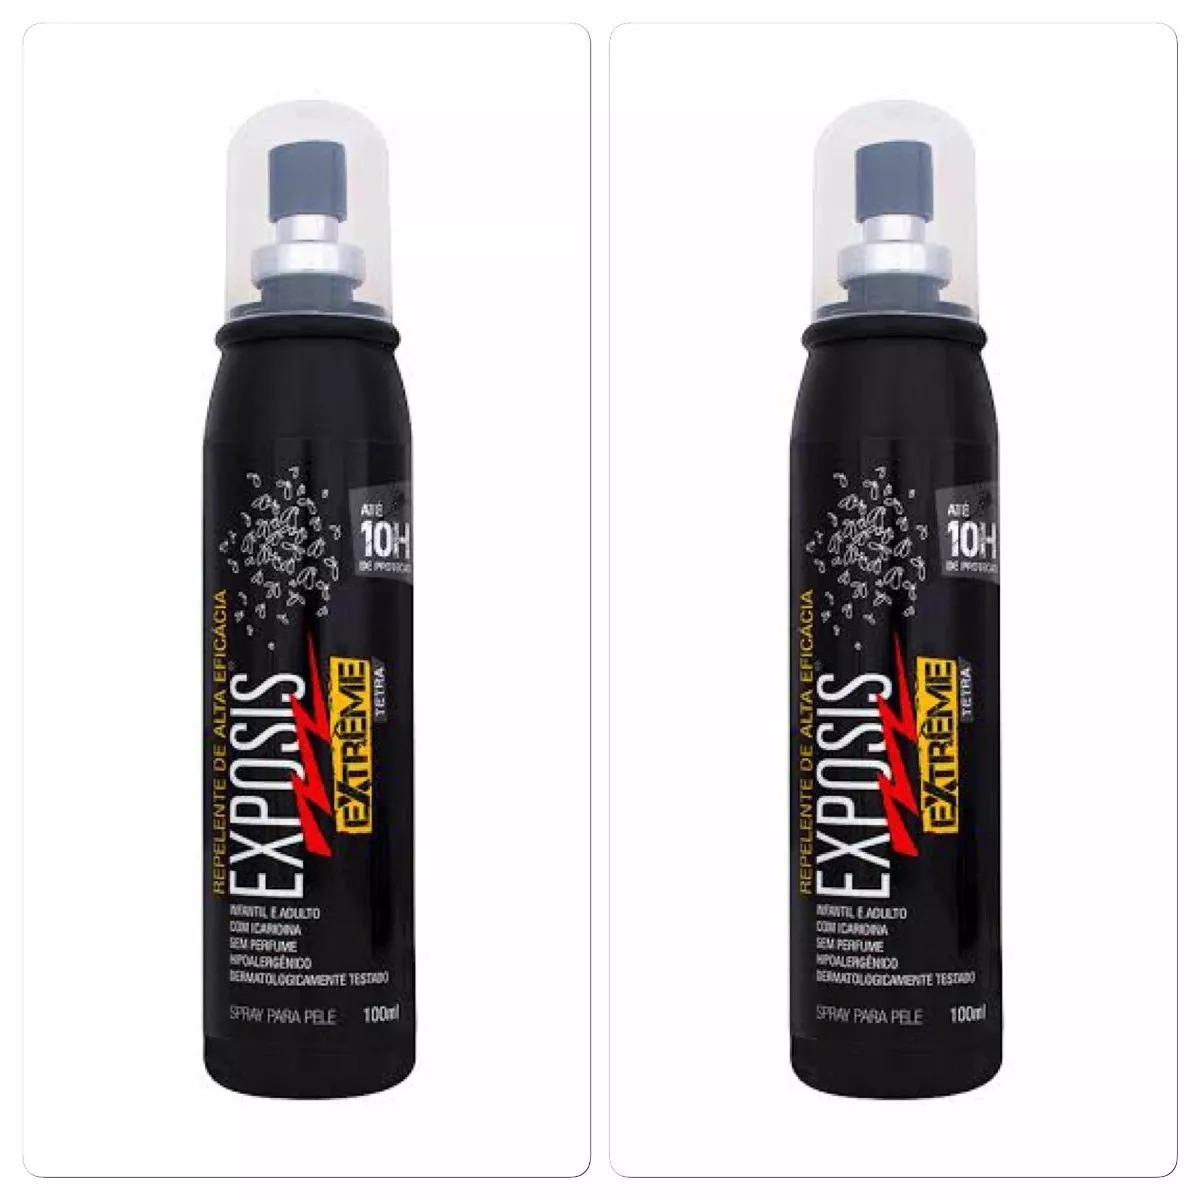 ef8192145 repelente exposis extreme spray 100ml repelente( 2 unidades). Carregando  zoom.